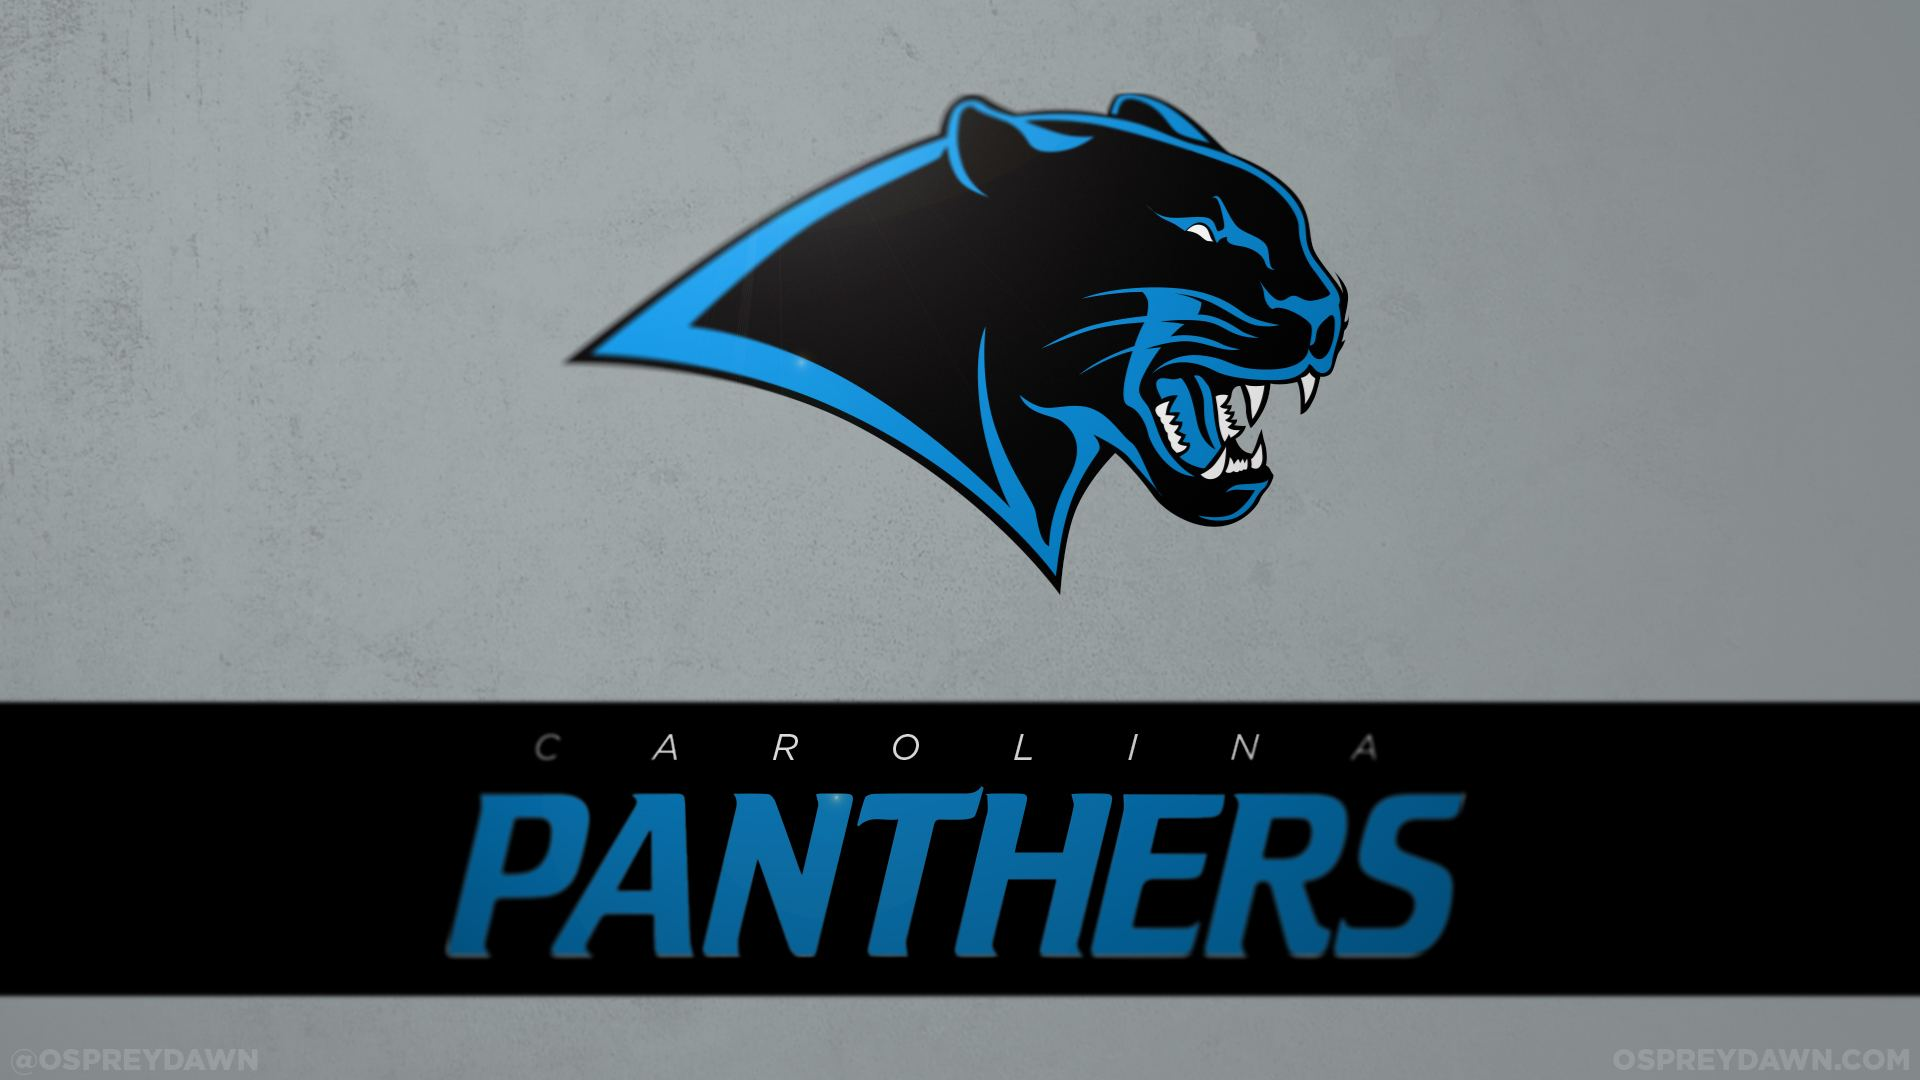 Carolina Panthers Wallpaper - HD Wallpapers Backgrounds of Your Choice